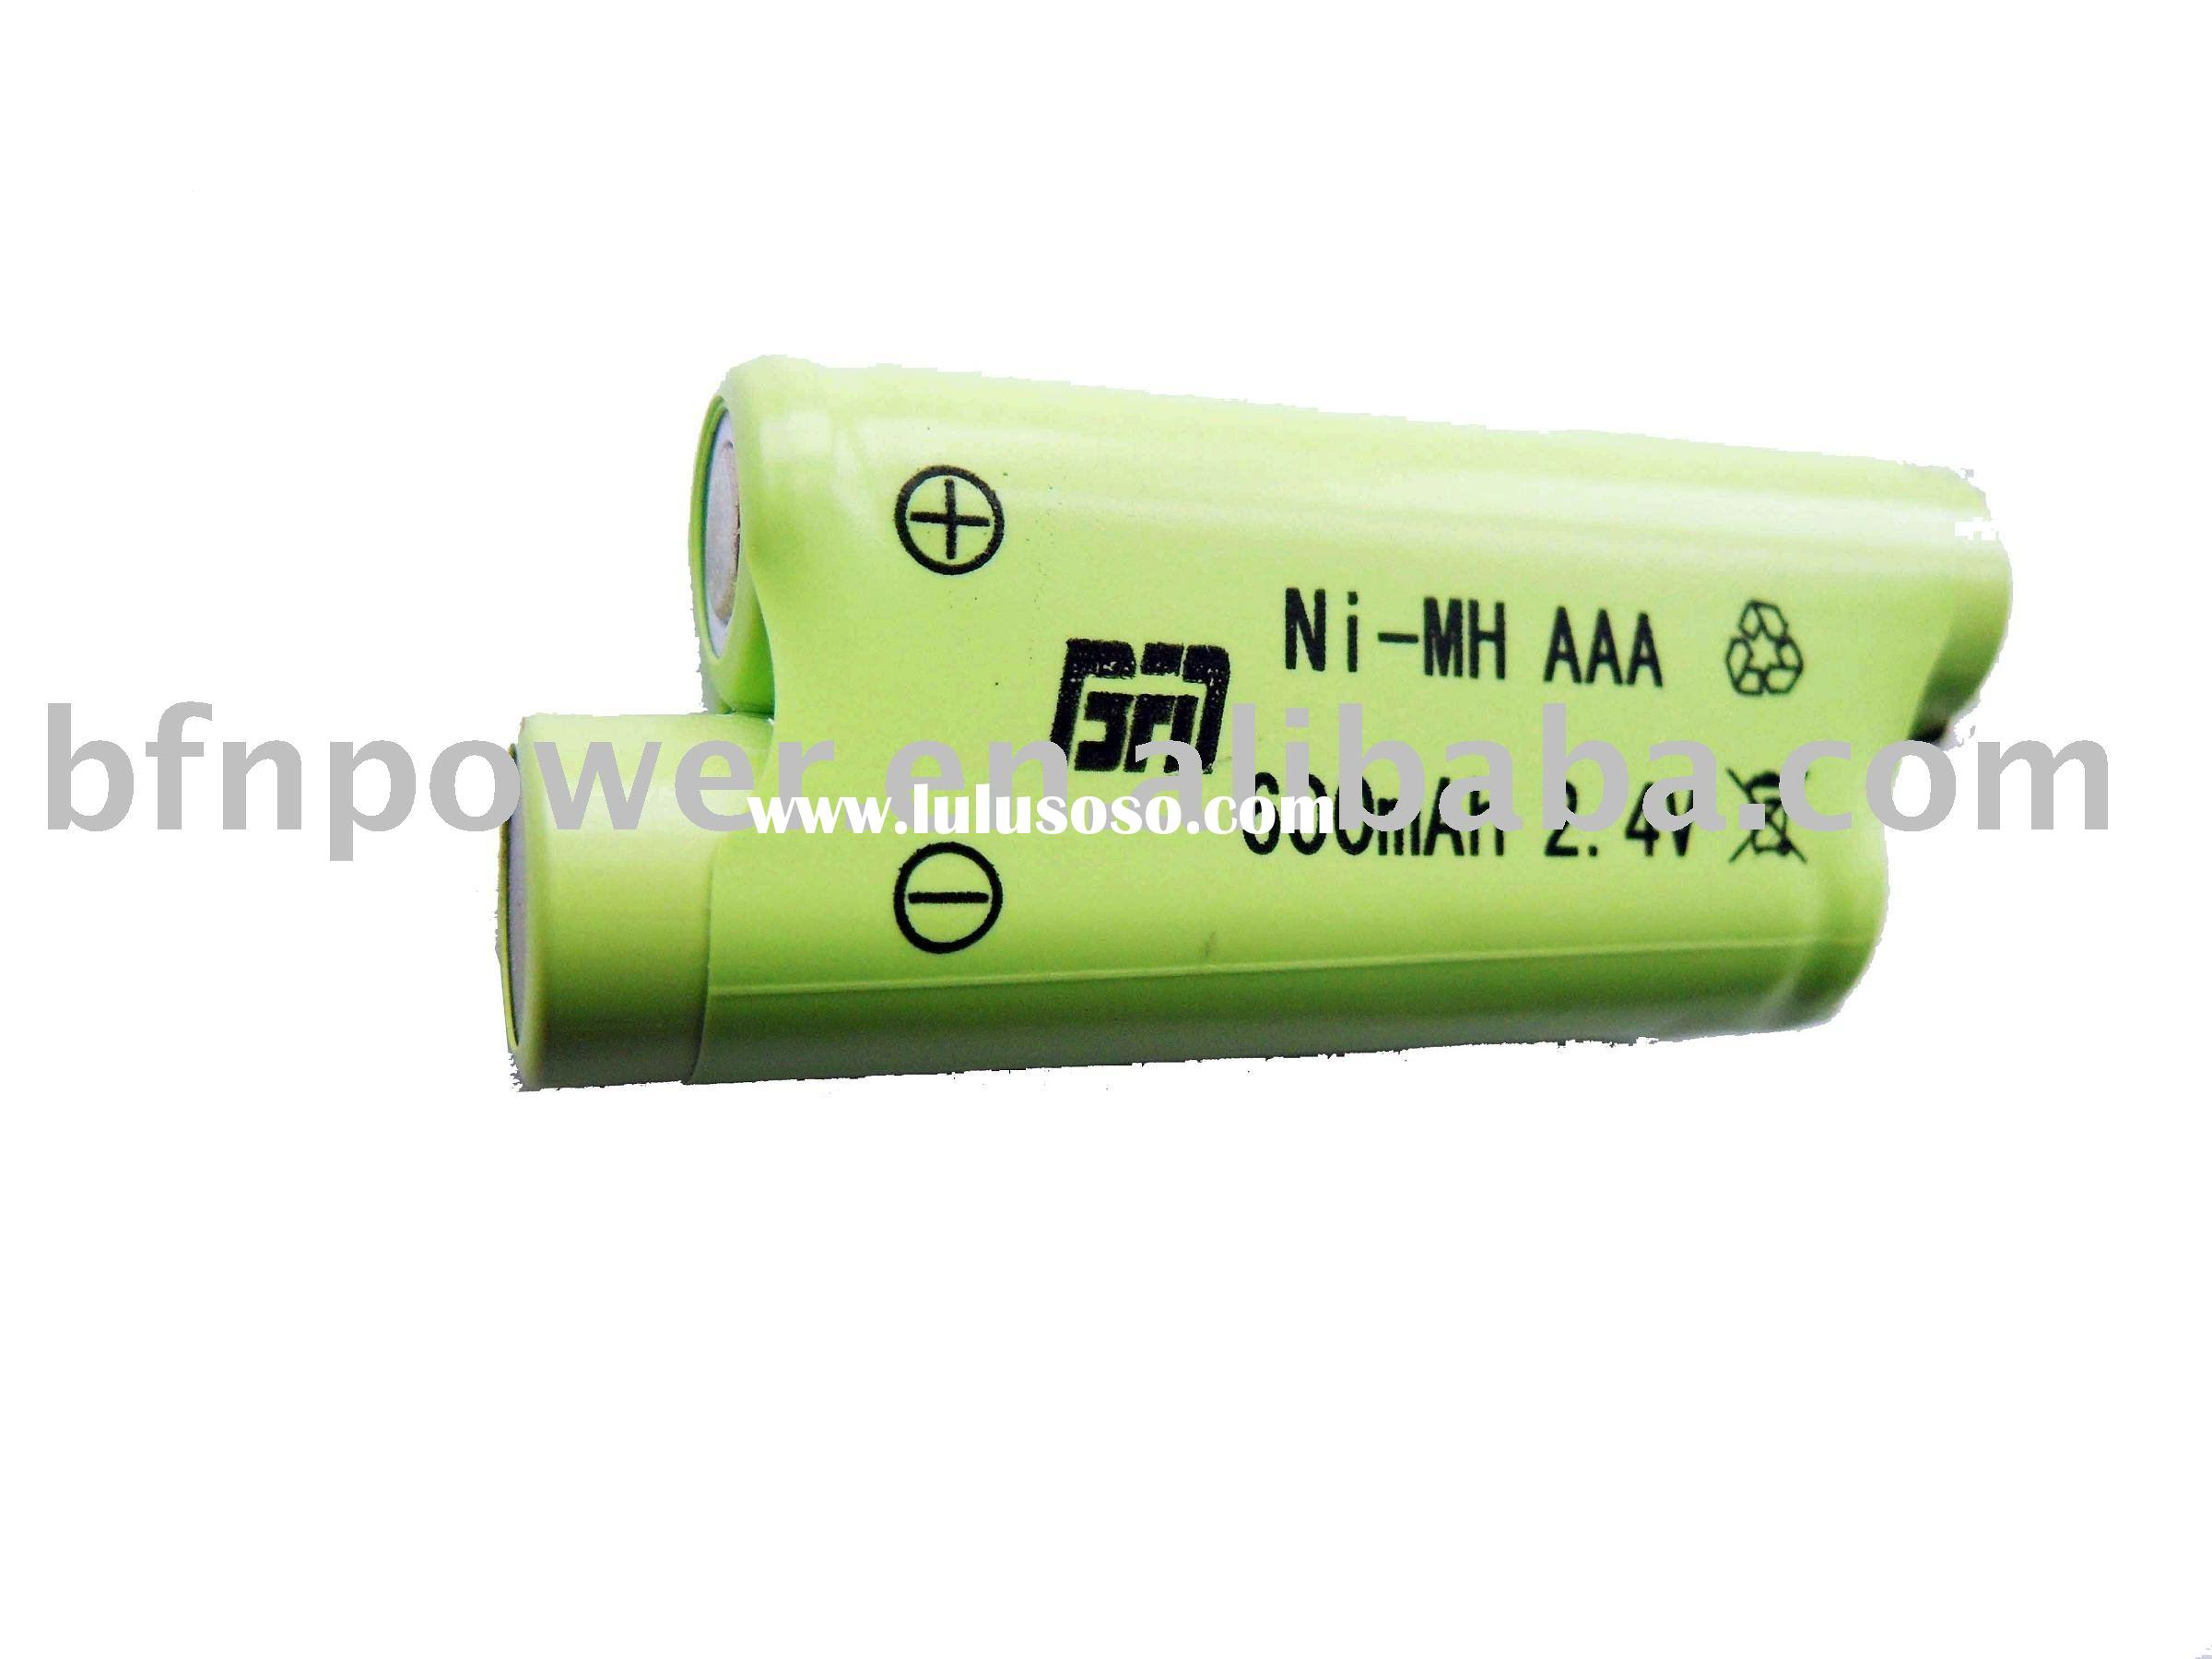 NI-MH battery pack AAA 600mAh 2.4V. rechargeable)